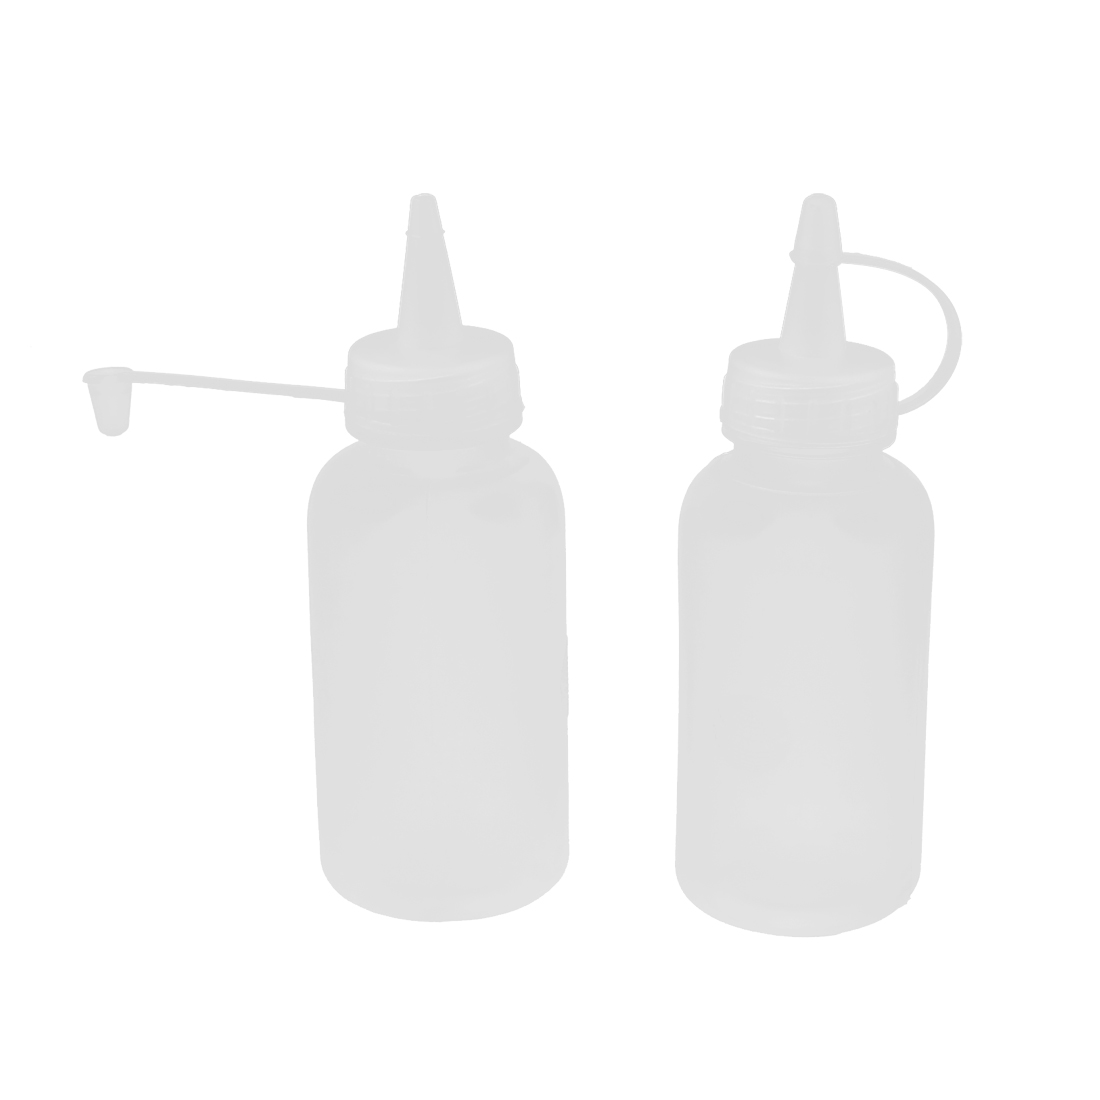 100ml Capacity Plastic Oil Liquid Bottle Holder Clear White 2pcs